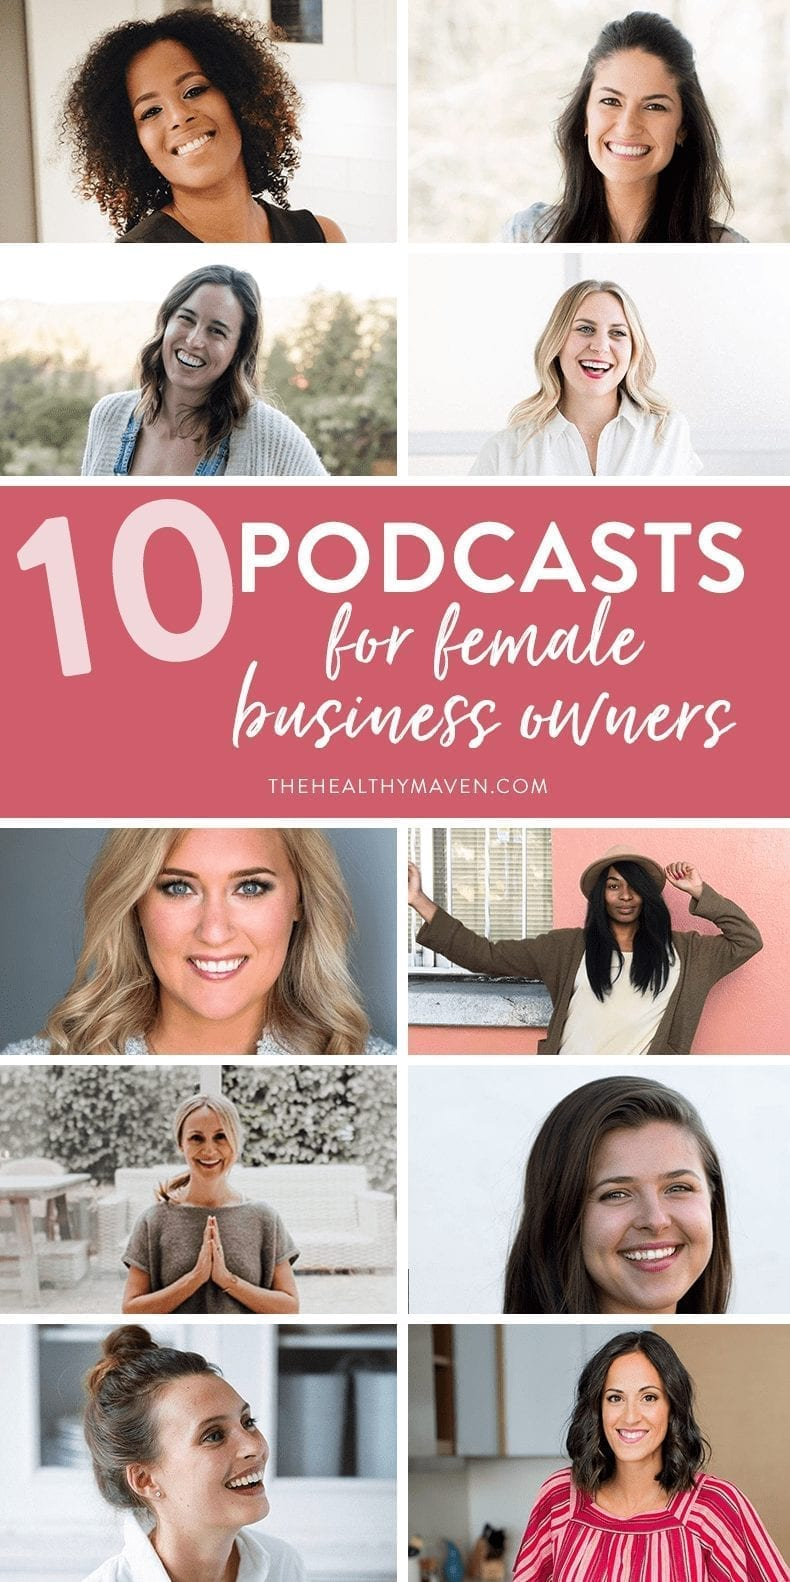 10 Podcasts for Female Business Owners